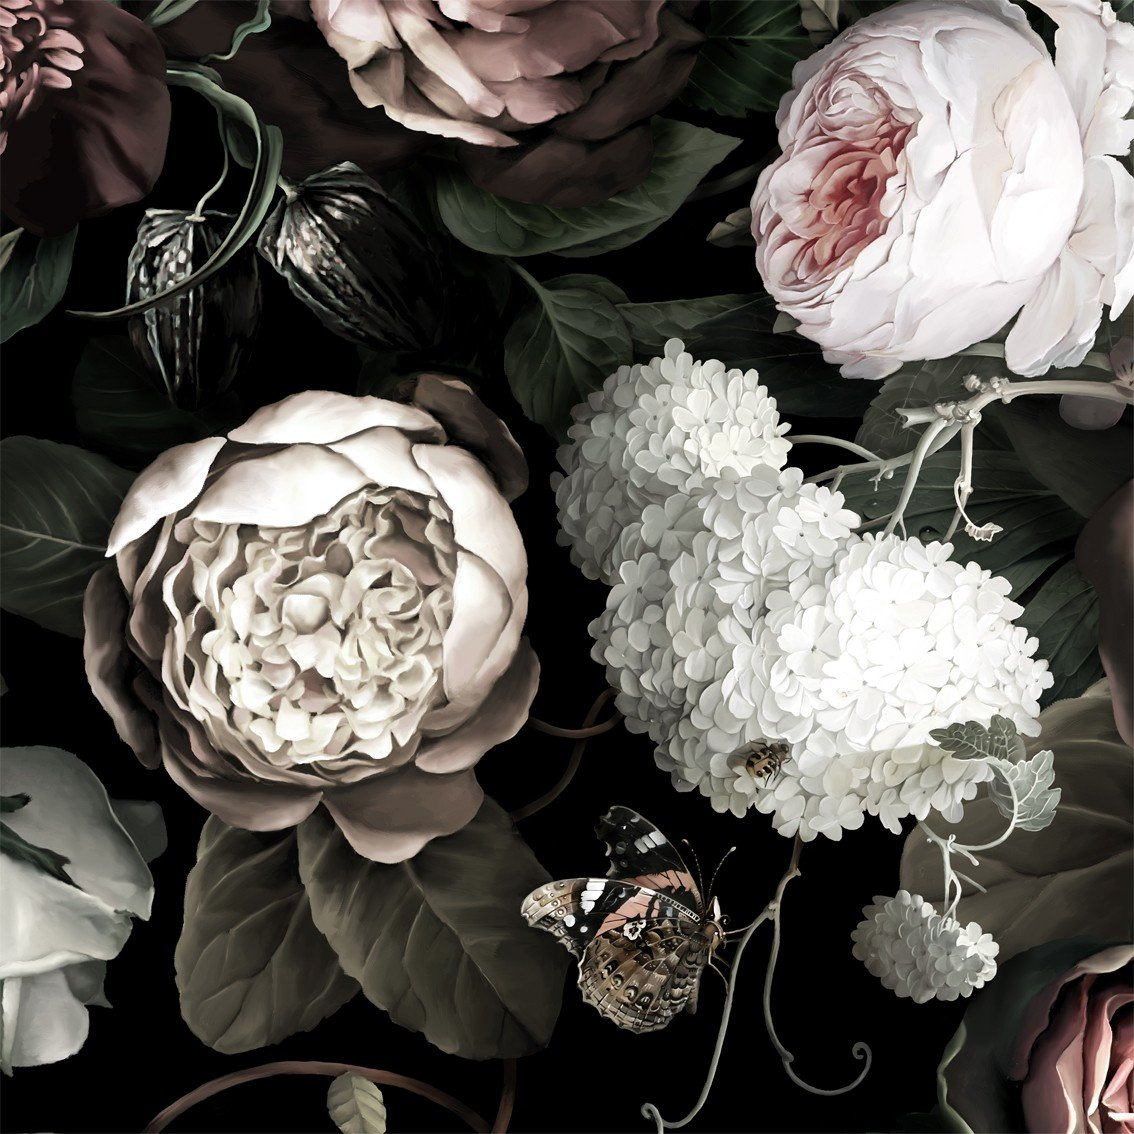 50 Dark Floral Wallpaper On Wallpapersafari